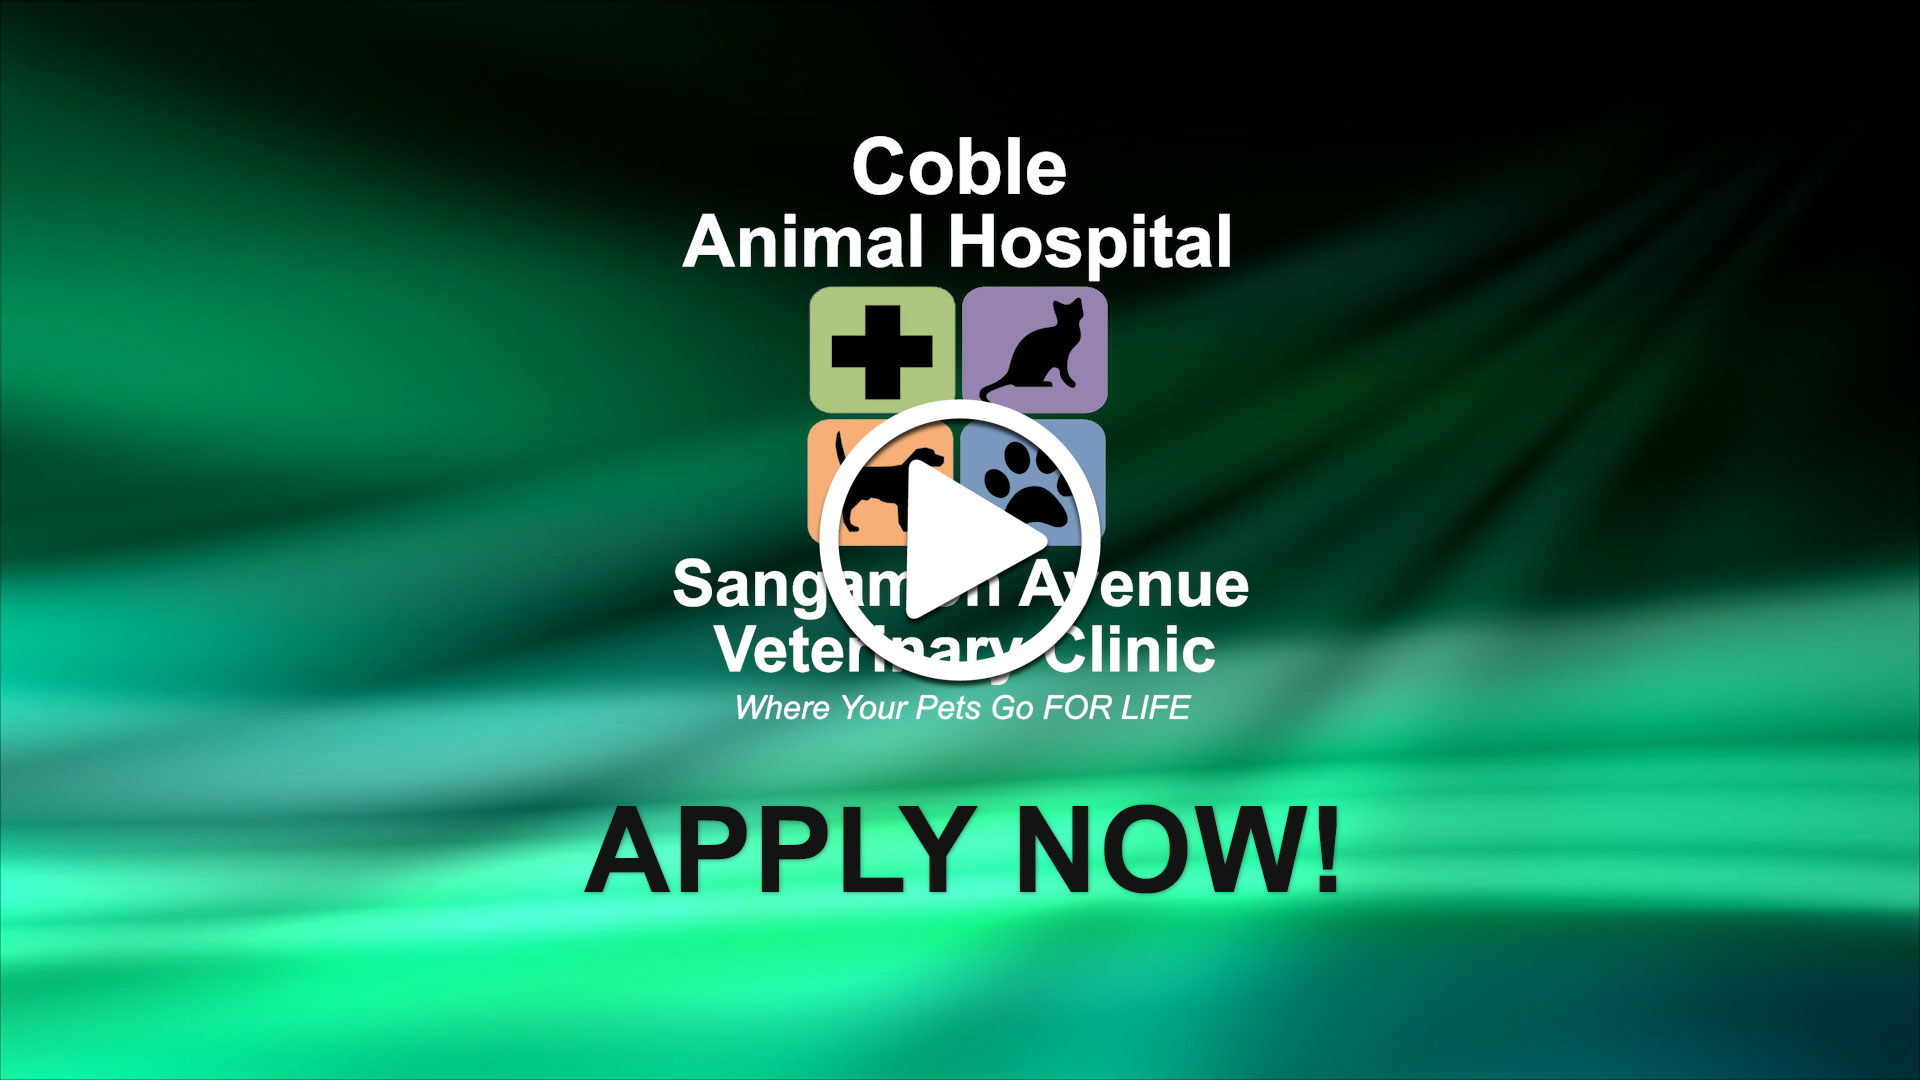 Watch our careers video for available job opening FT or PT Veterinarian - AAHA 72 years in Springfield, IL, USA